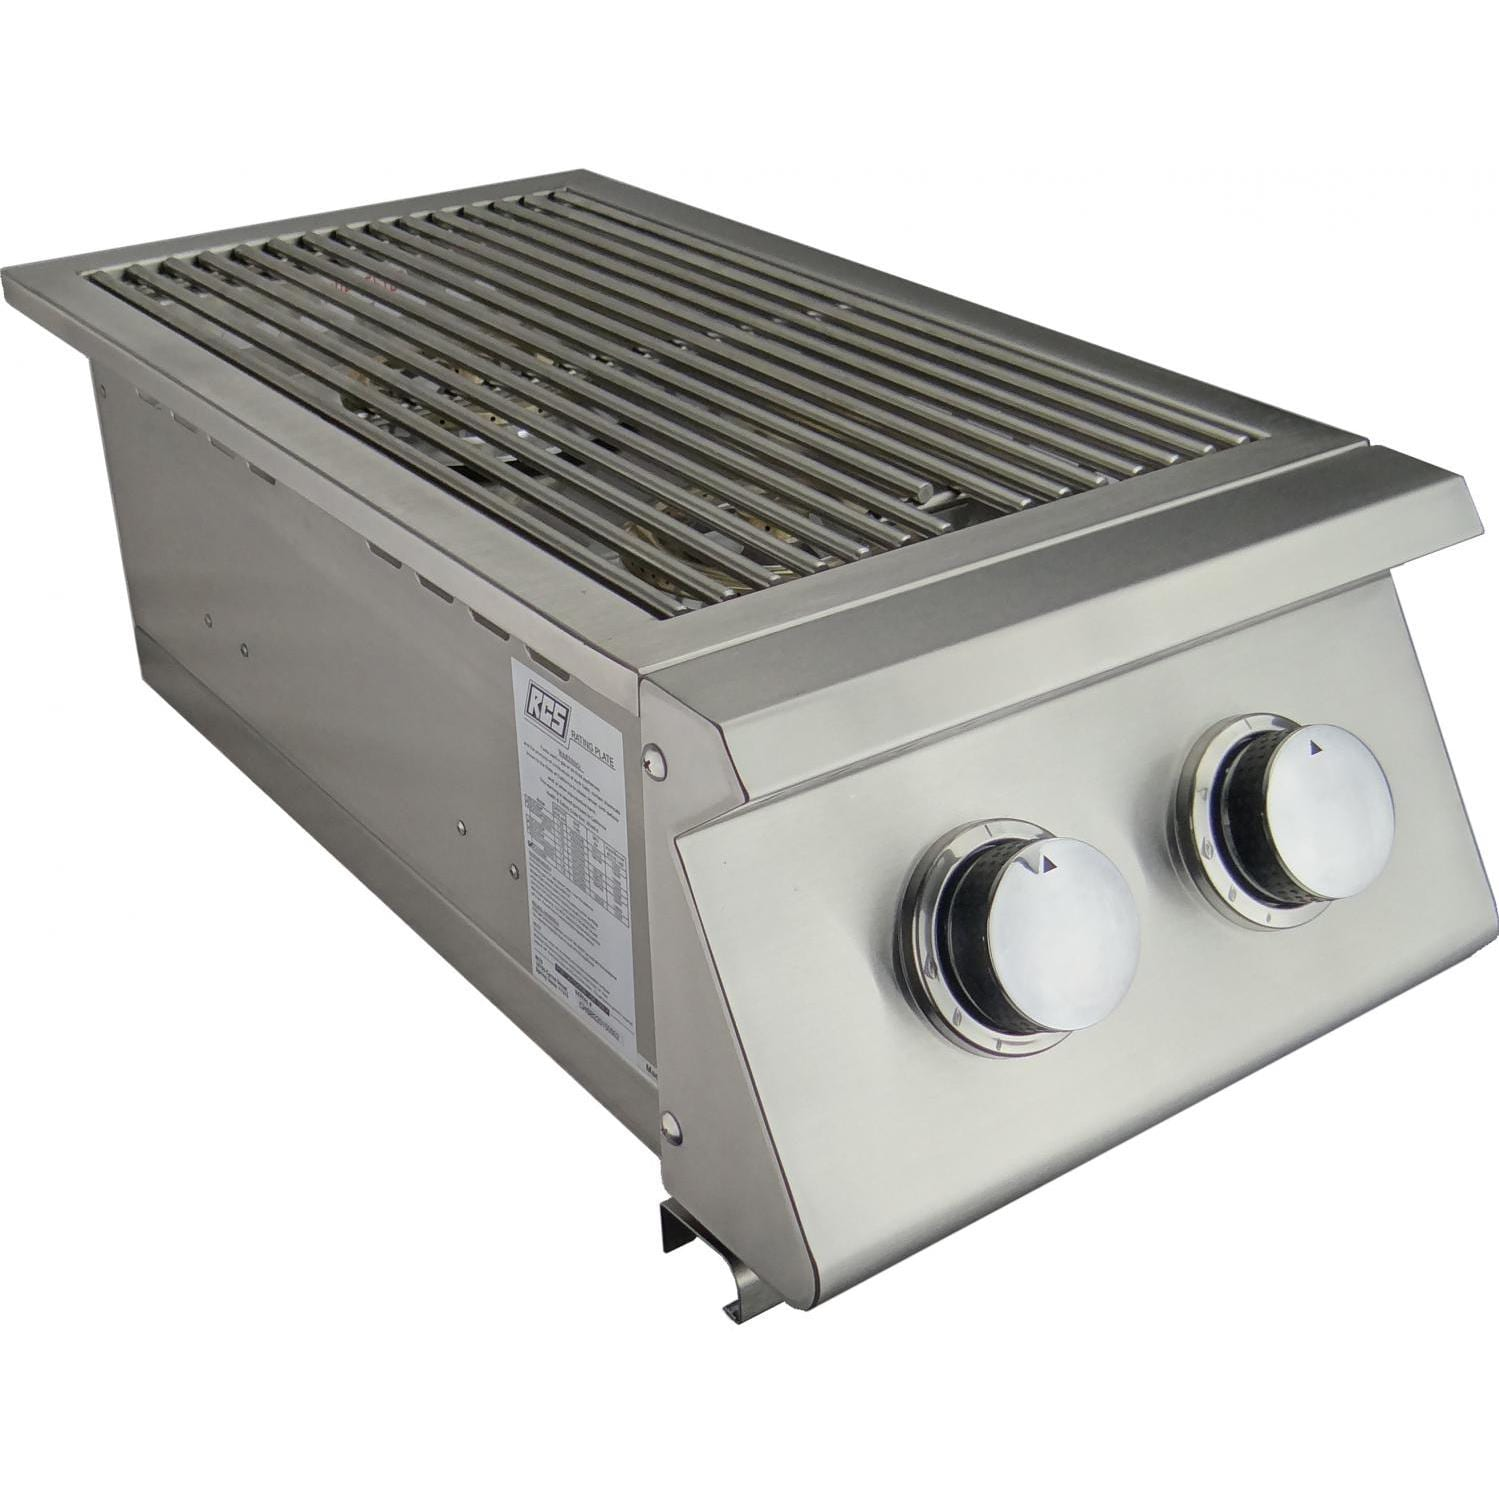 RCS Premier Series Natural Gas Double Side Burner